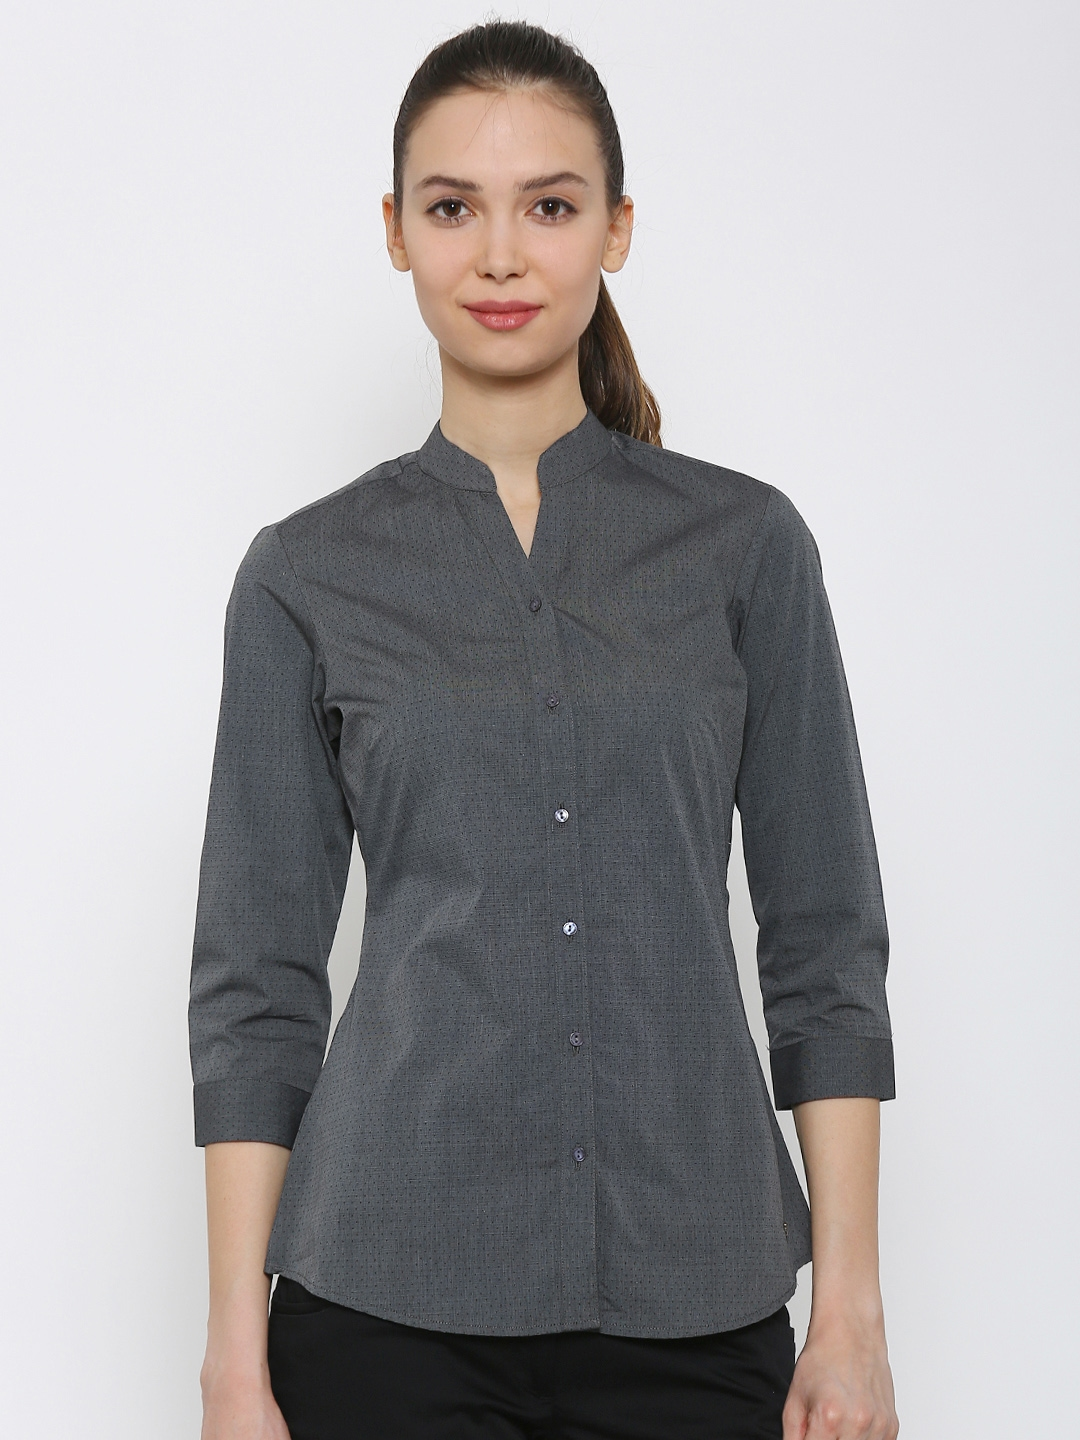 the gallery for gt formal shirts for women designs